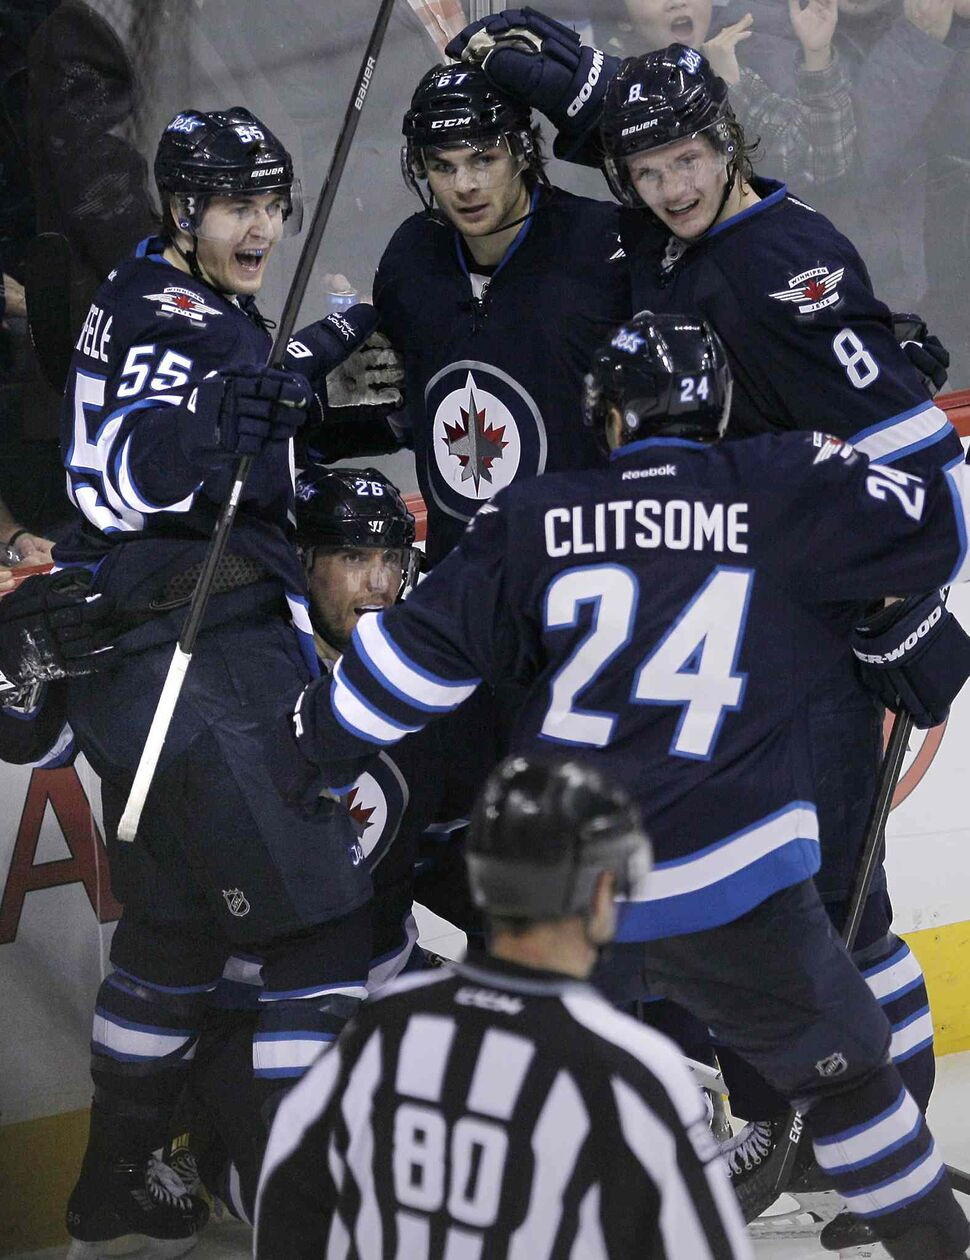 Winnipeg Jets (from left) Mark Scheifele, Blake Wheeler, Michael Frolik, Grant Clitsome and Jacob Trouba celebrate Wheeler's tying goal against the Colorado Avalanche in the third period. (JOHN WOODS / THE CANADIAN PRESS)